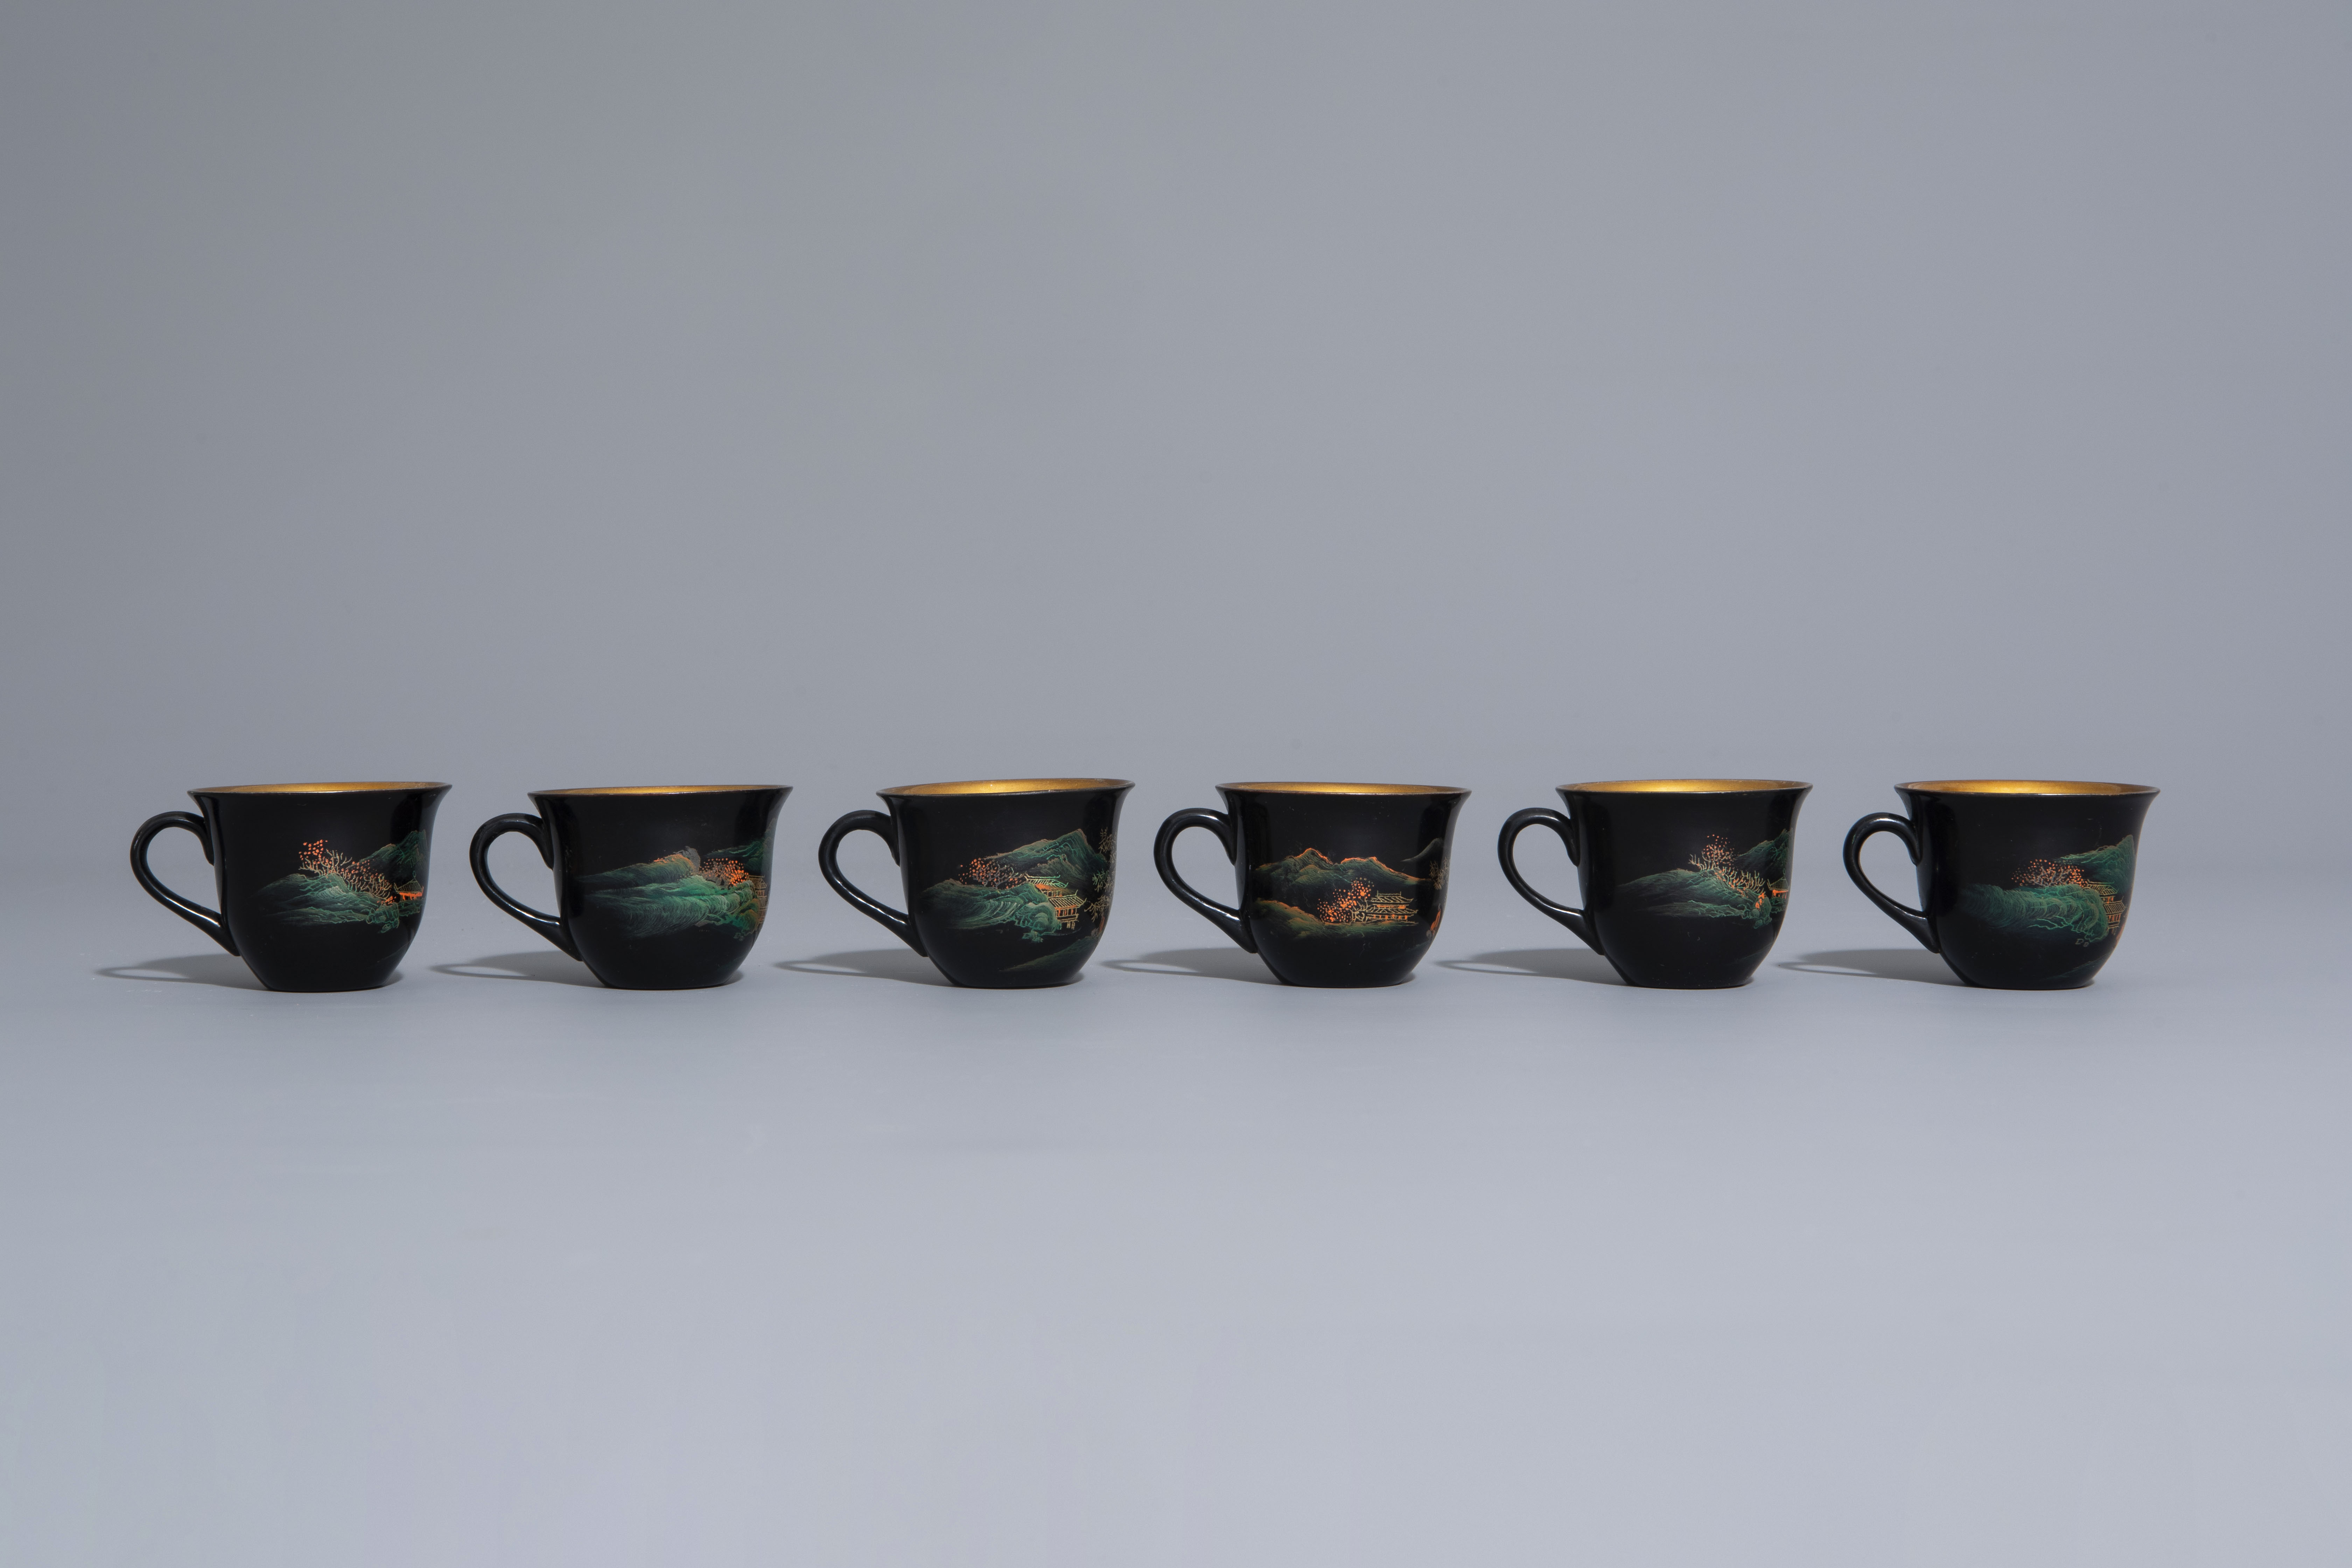 An extensive Chinese Foochow lacquer Shen Shao'an style coffee and tea service, 20th C. - Image 16 of 23